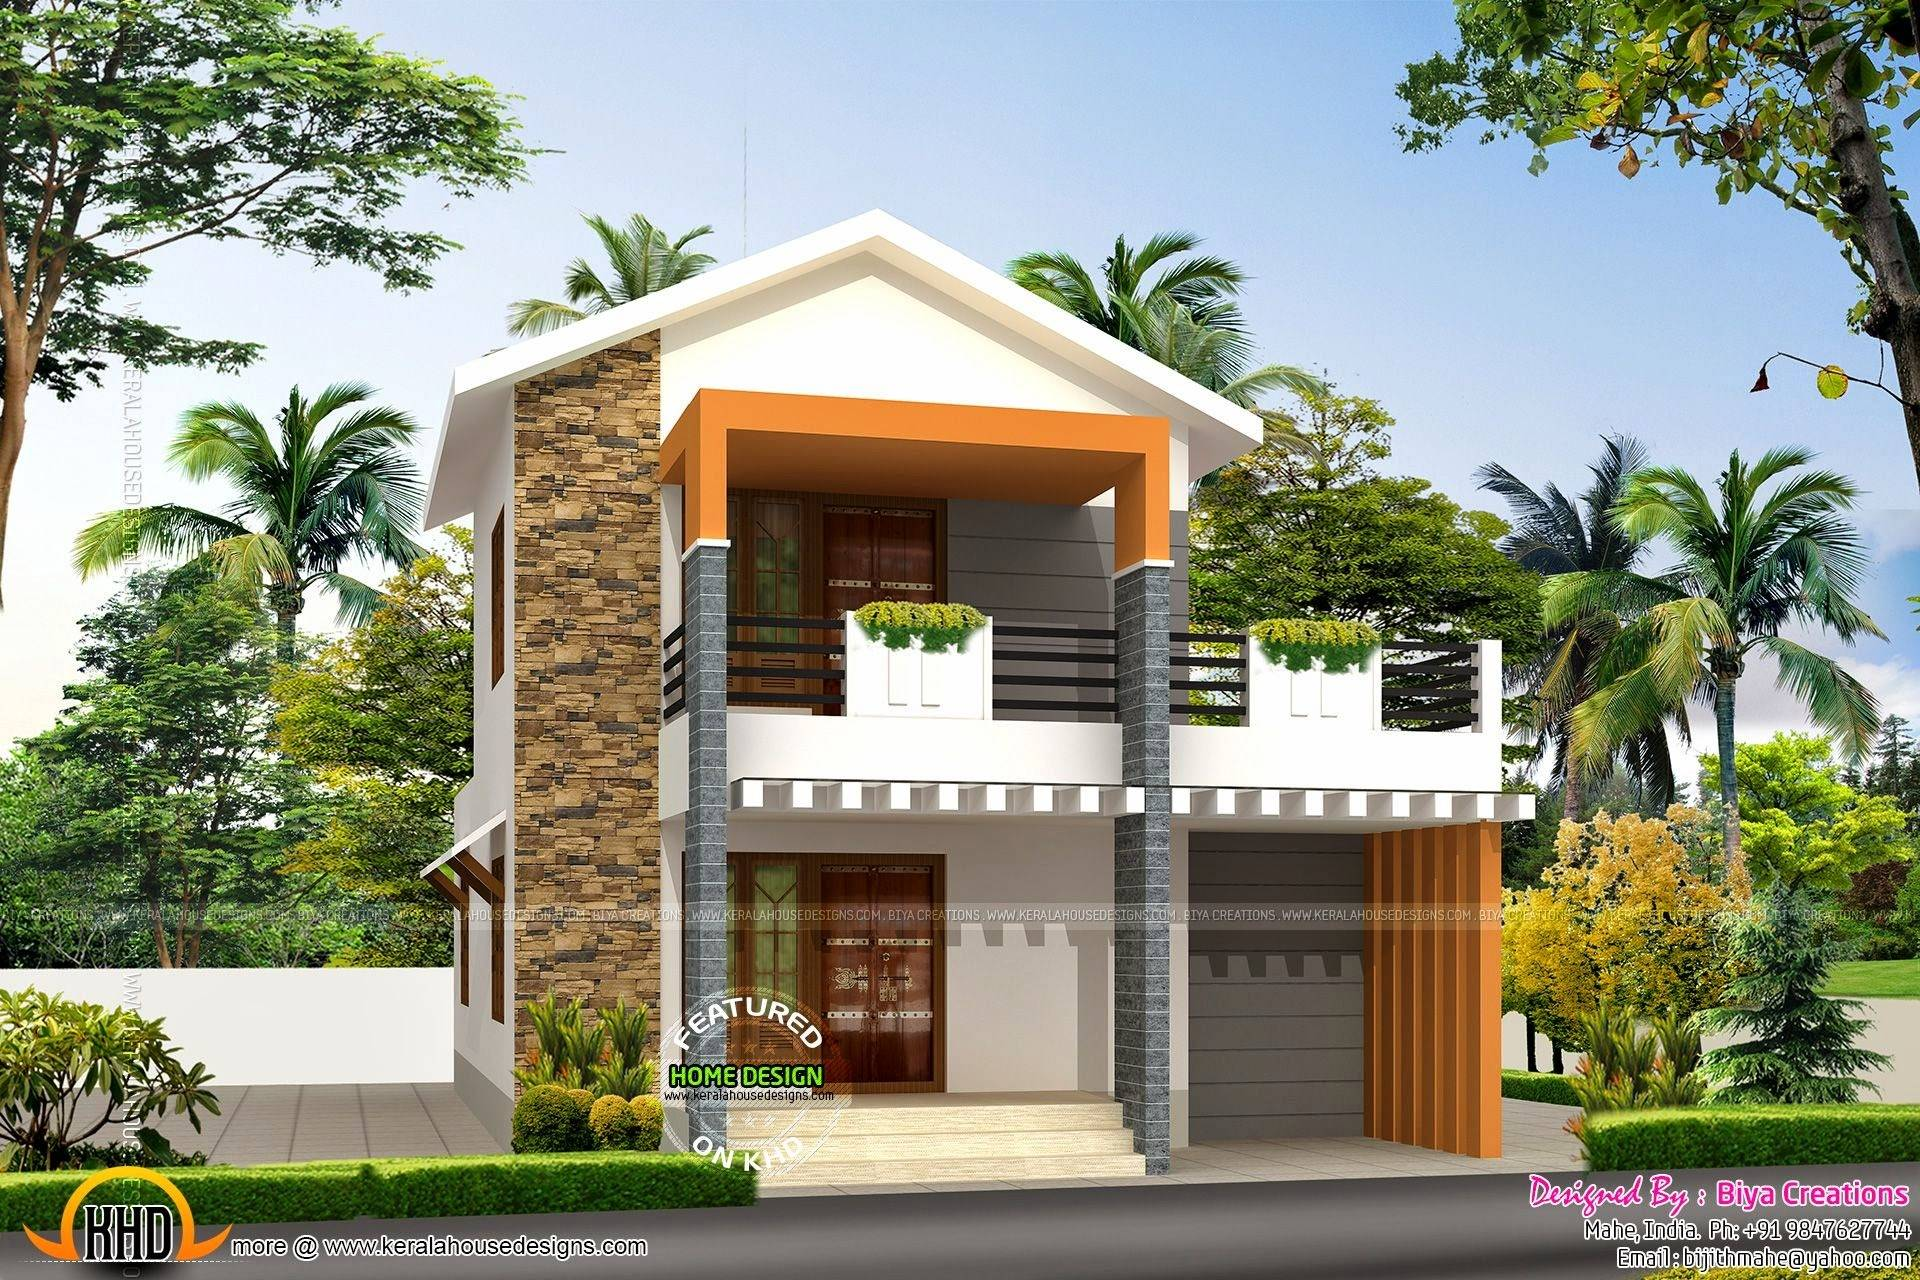 Check Out 15 Best Small Home Designs Ideas House Plans